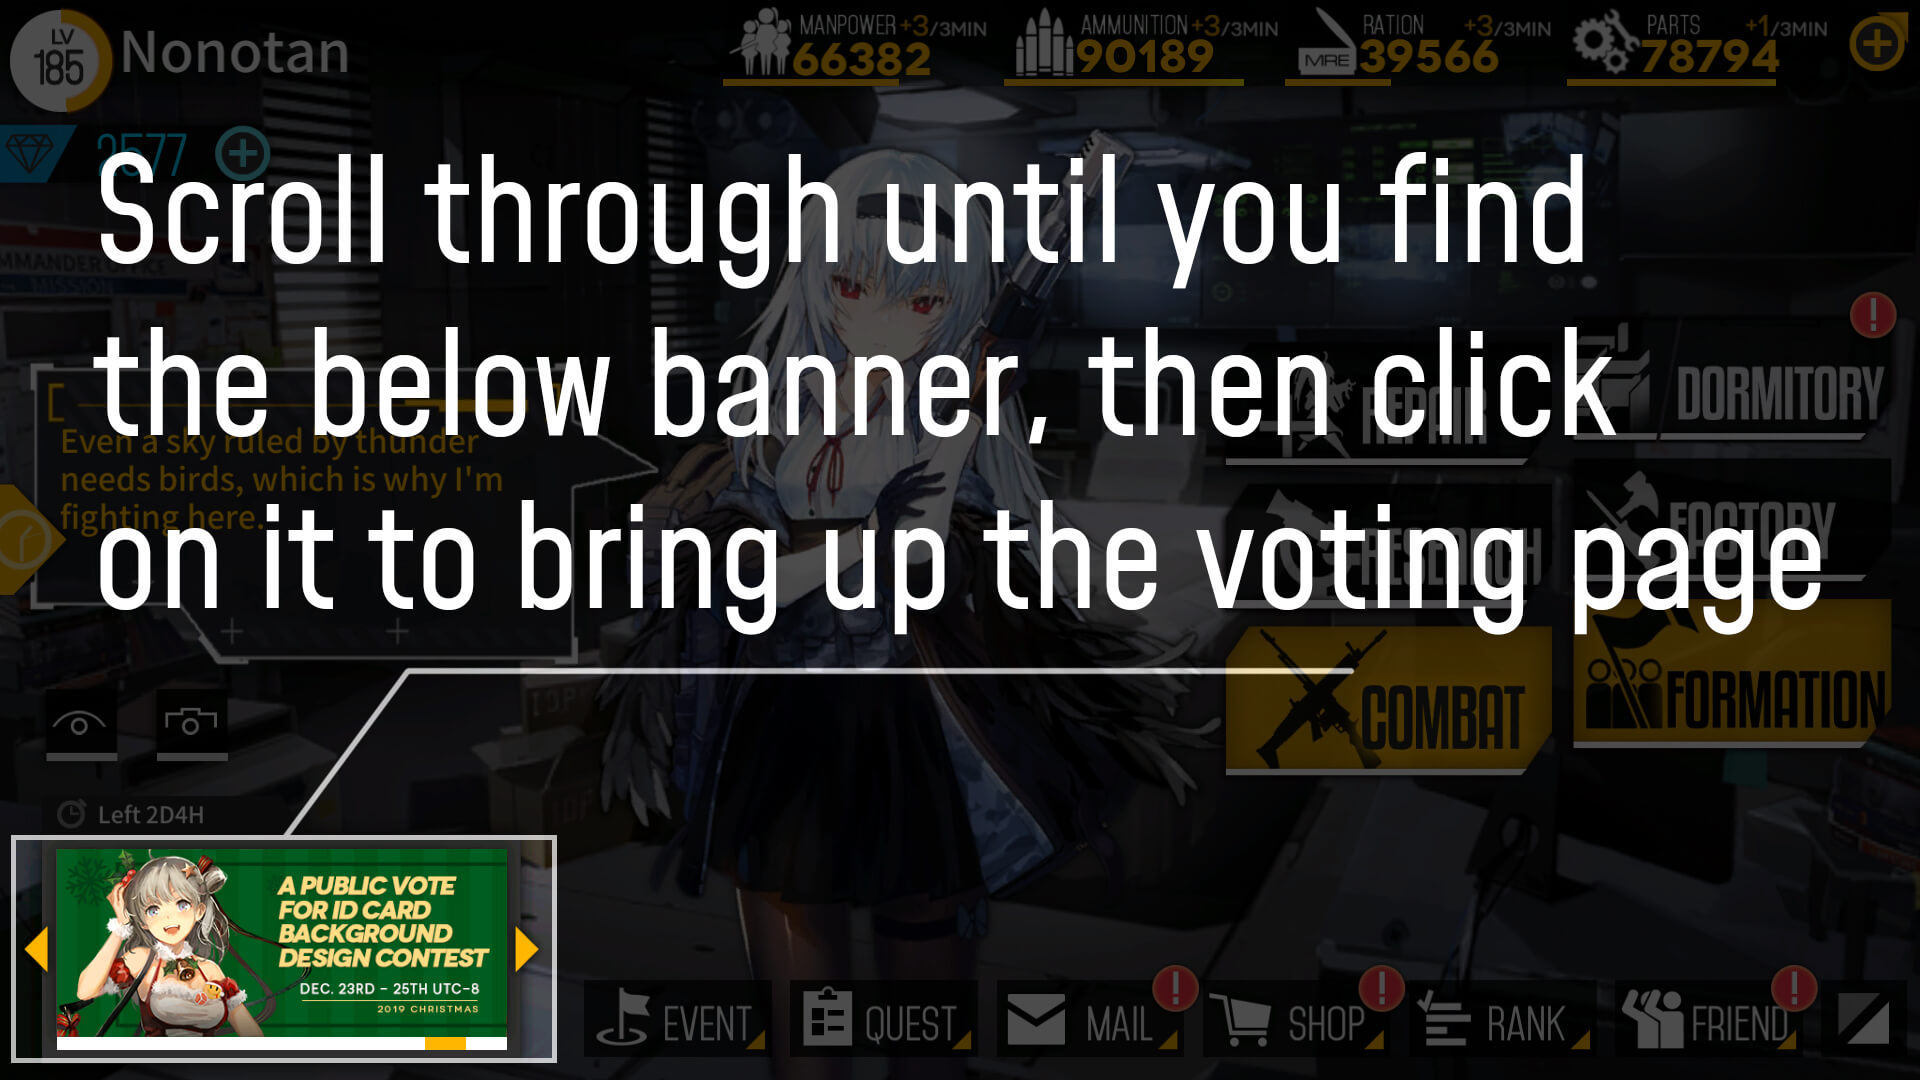 Screenshot showing where the in-game voting option is located.